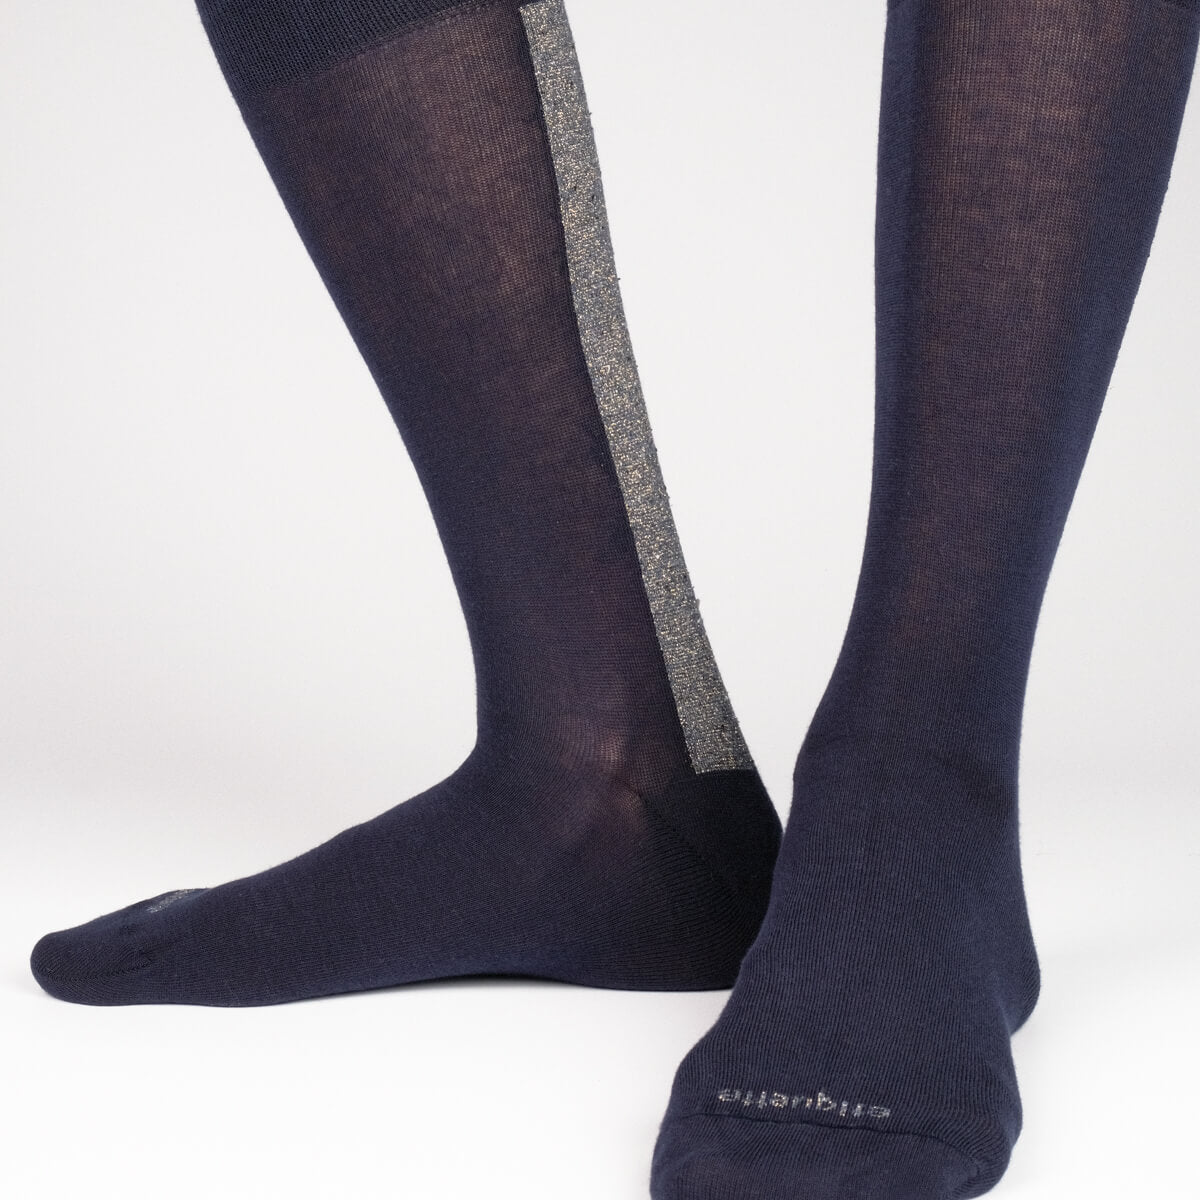 Mens Socks - Beat It Metallic Back Stripe Men's Socks- Navy Blue⎪Etiquette Clothiers